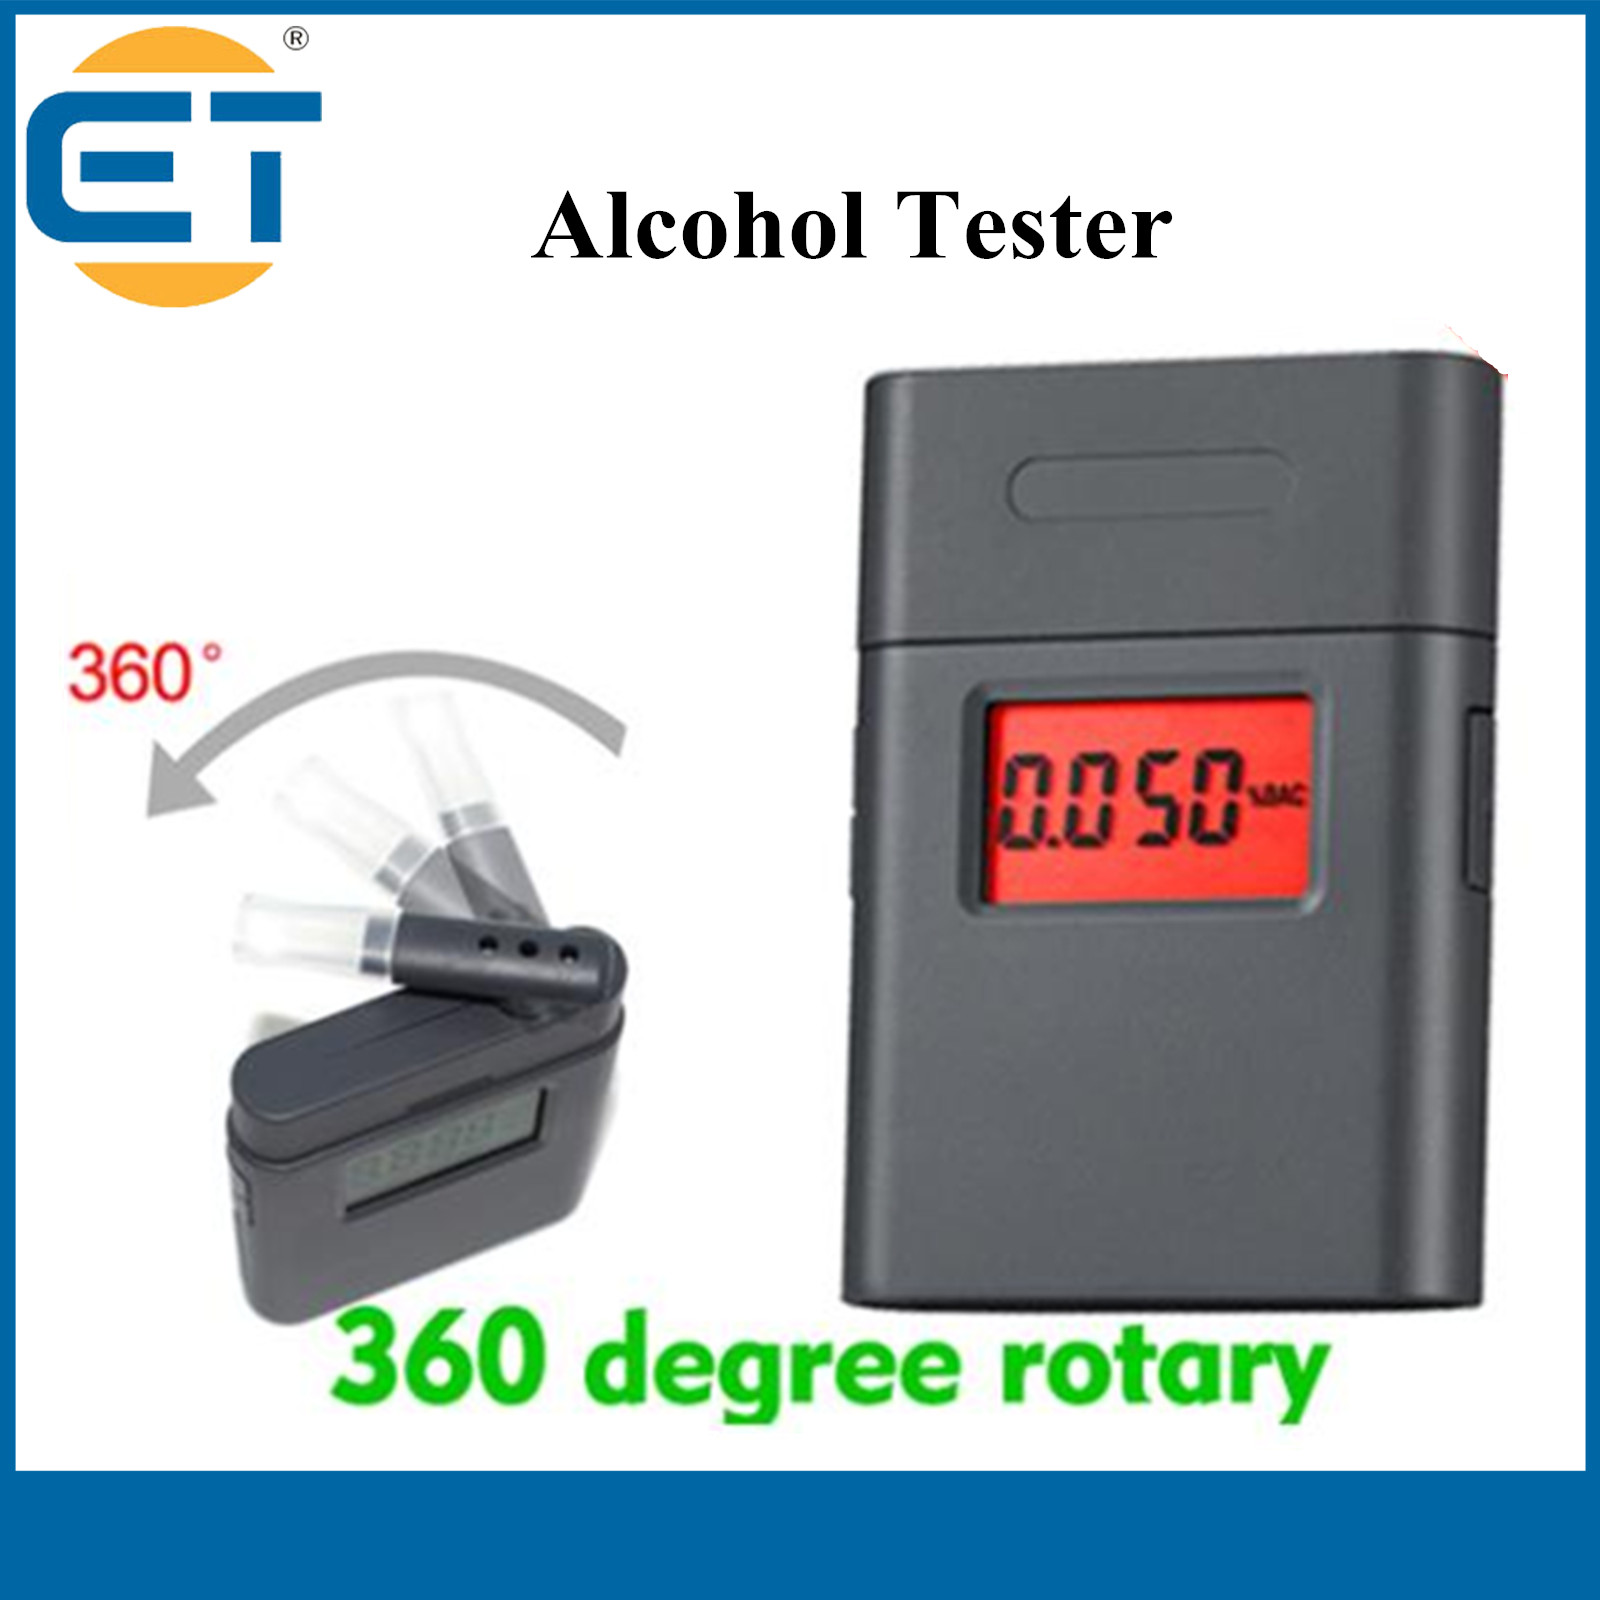 Patent Alkohol tester Police Digital Breath Alcohol Tester with 360 degree rotating device for drive safely(Hong Kong)